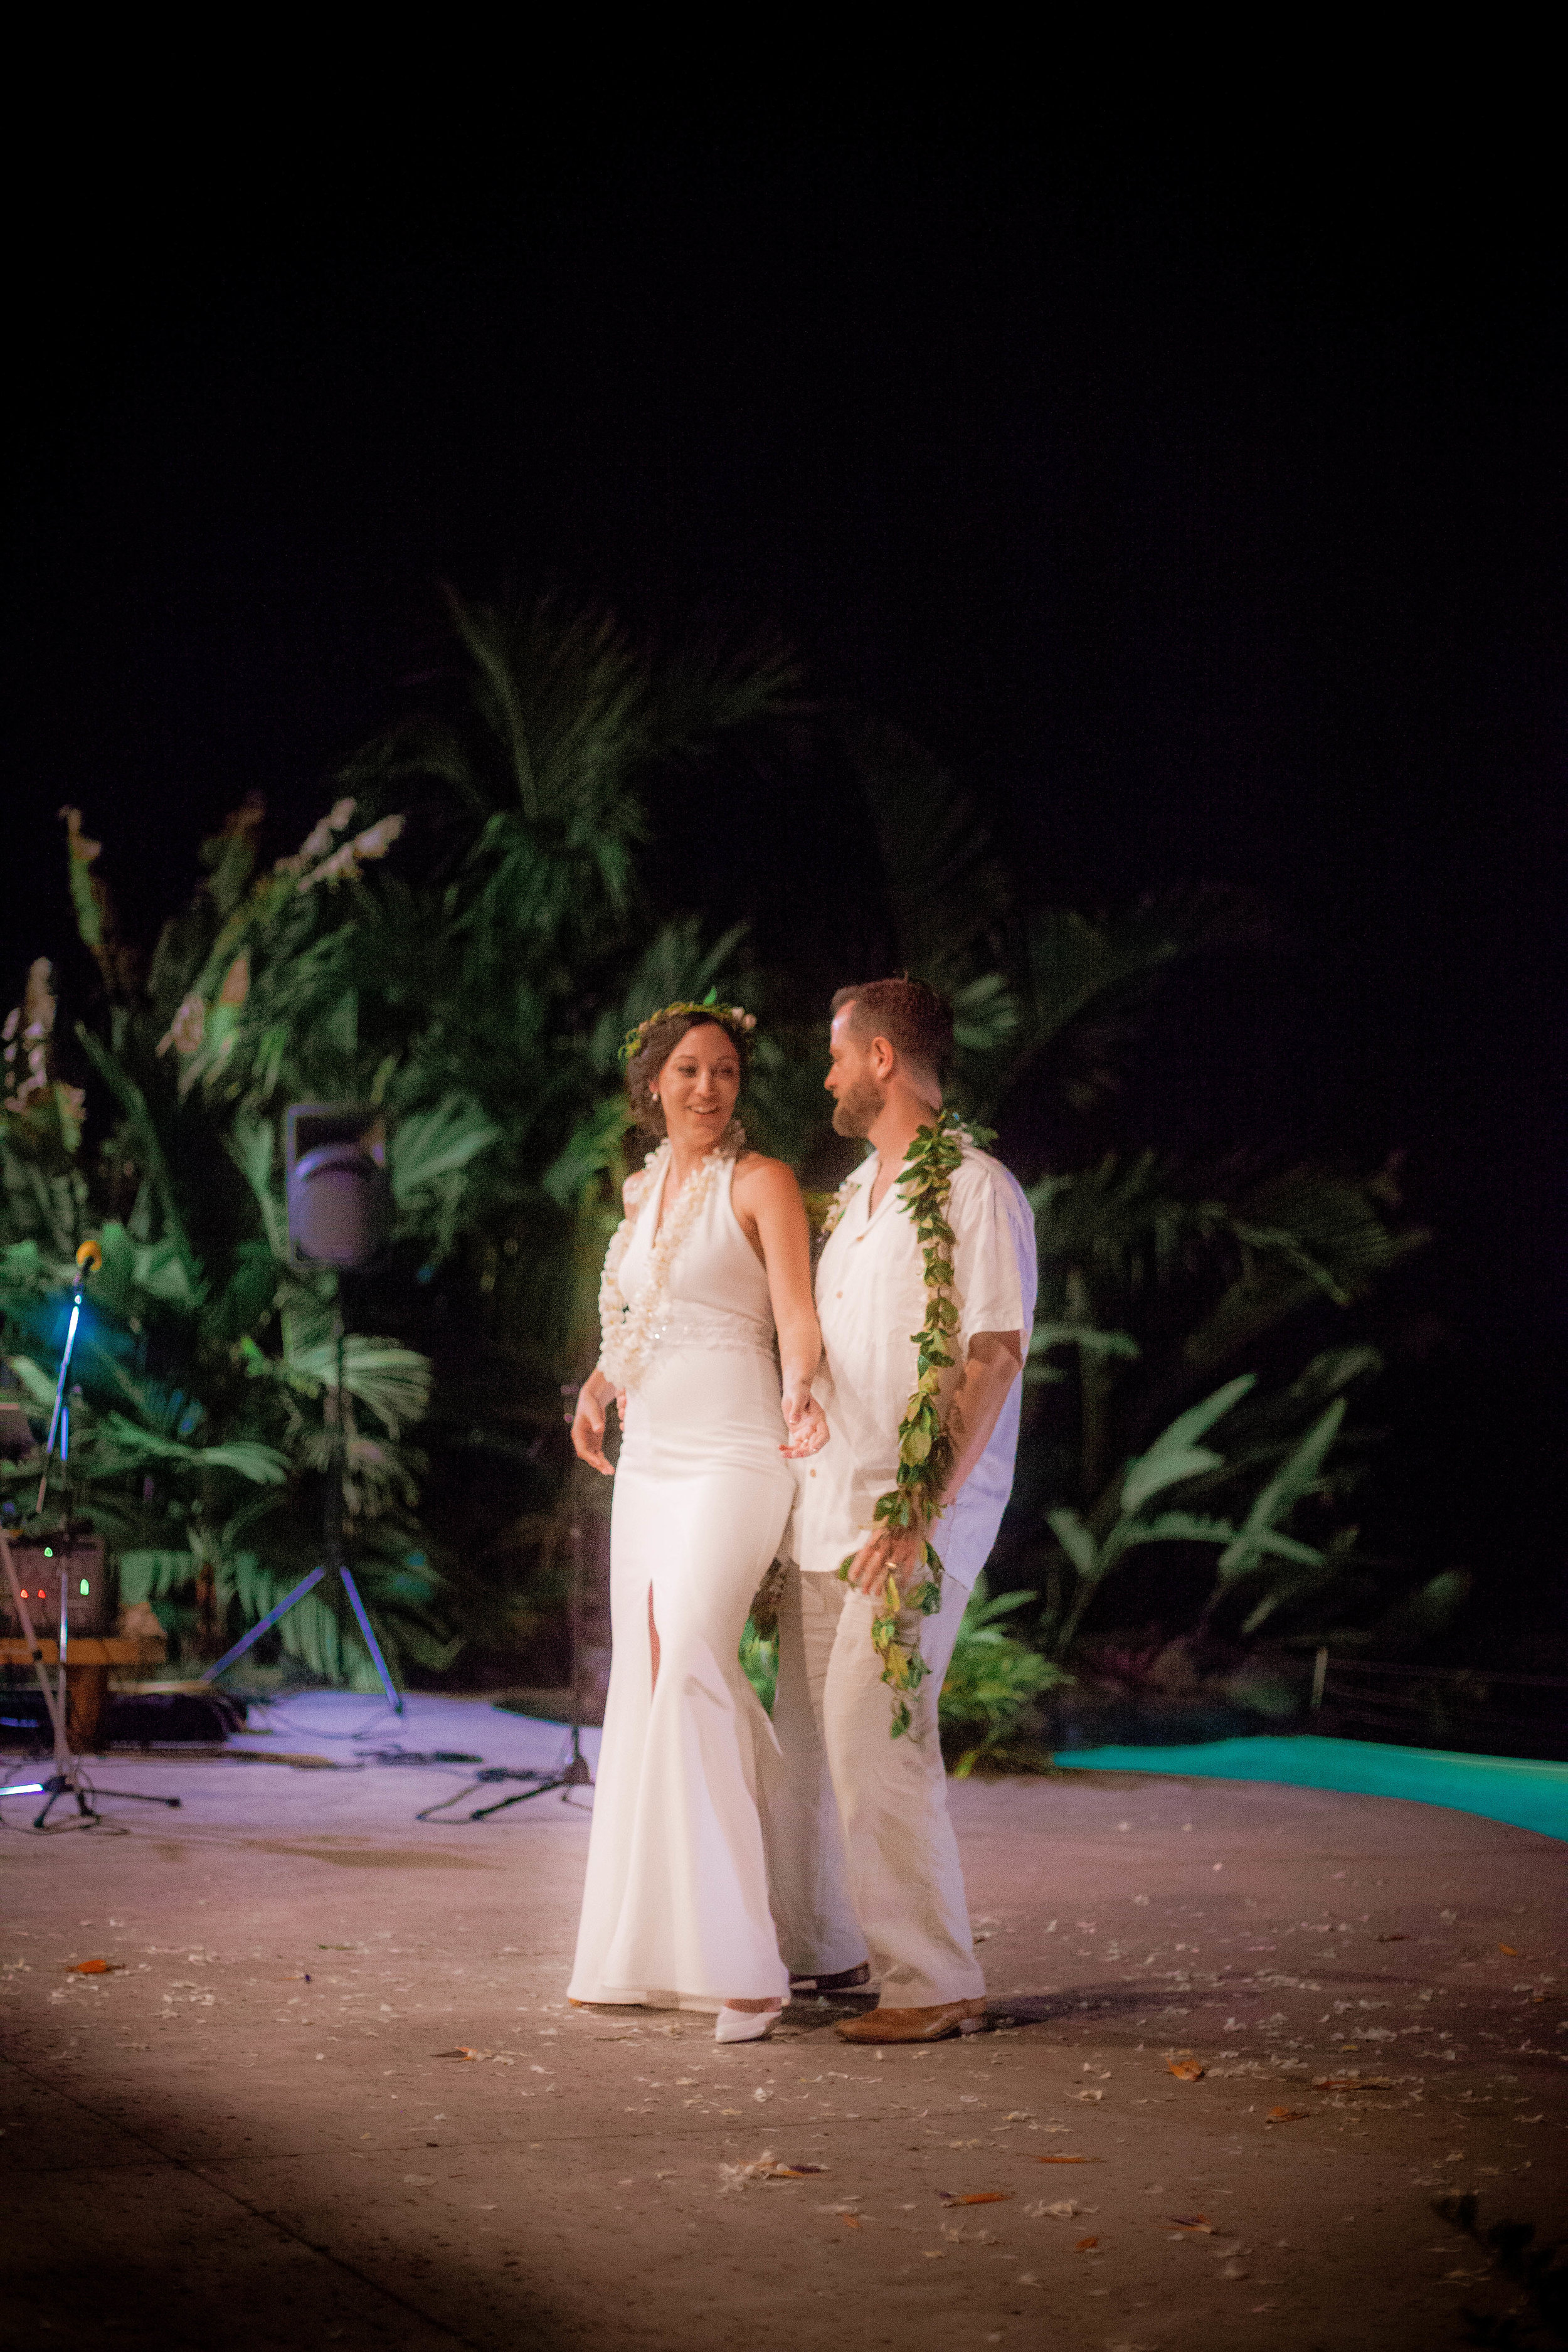 big island hawaii holualoa estate wedding 20160908200115-1kb.jpg